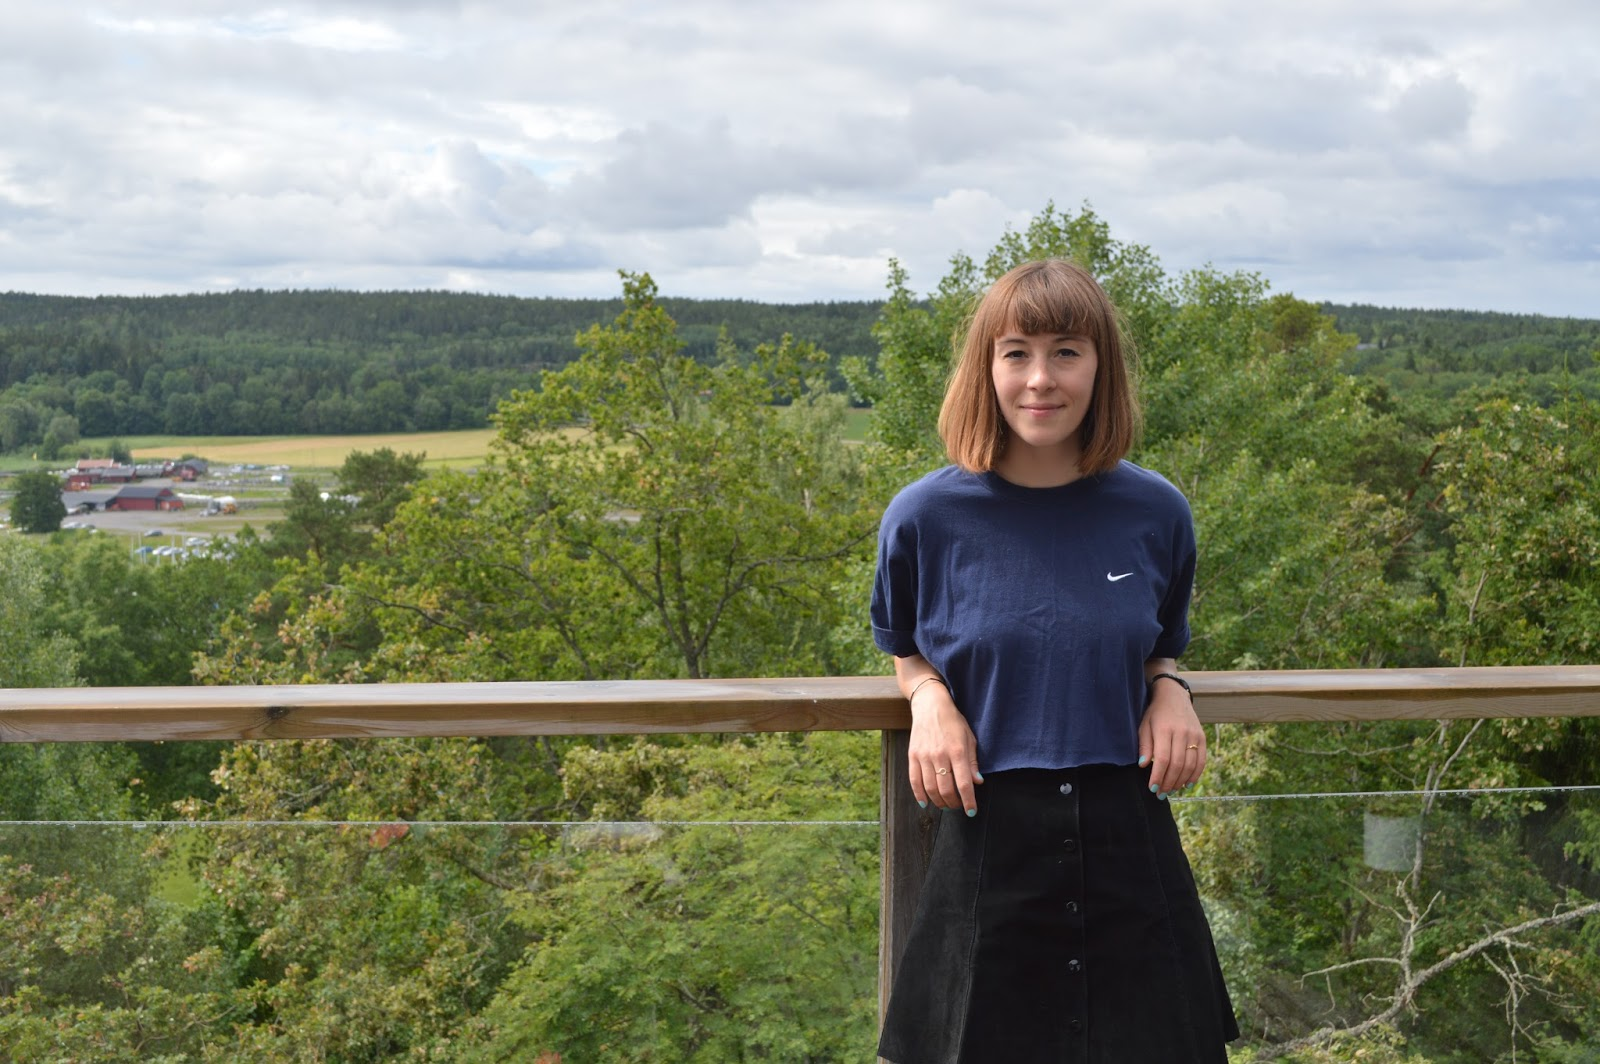 Me in retro Nike t-shirt and suede button down skirt with view from Airbnb Swedish cabin